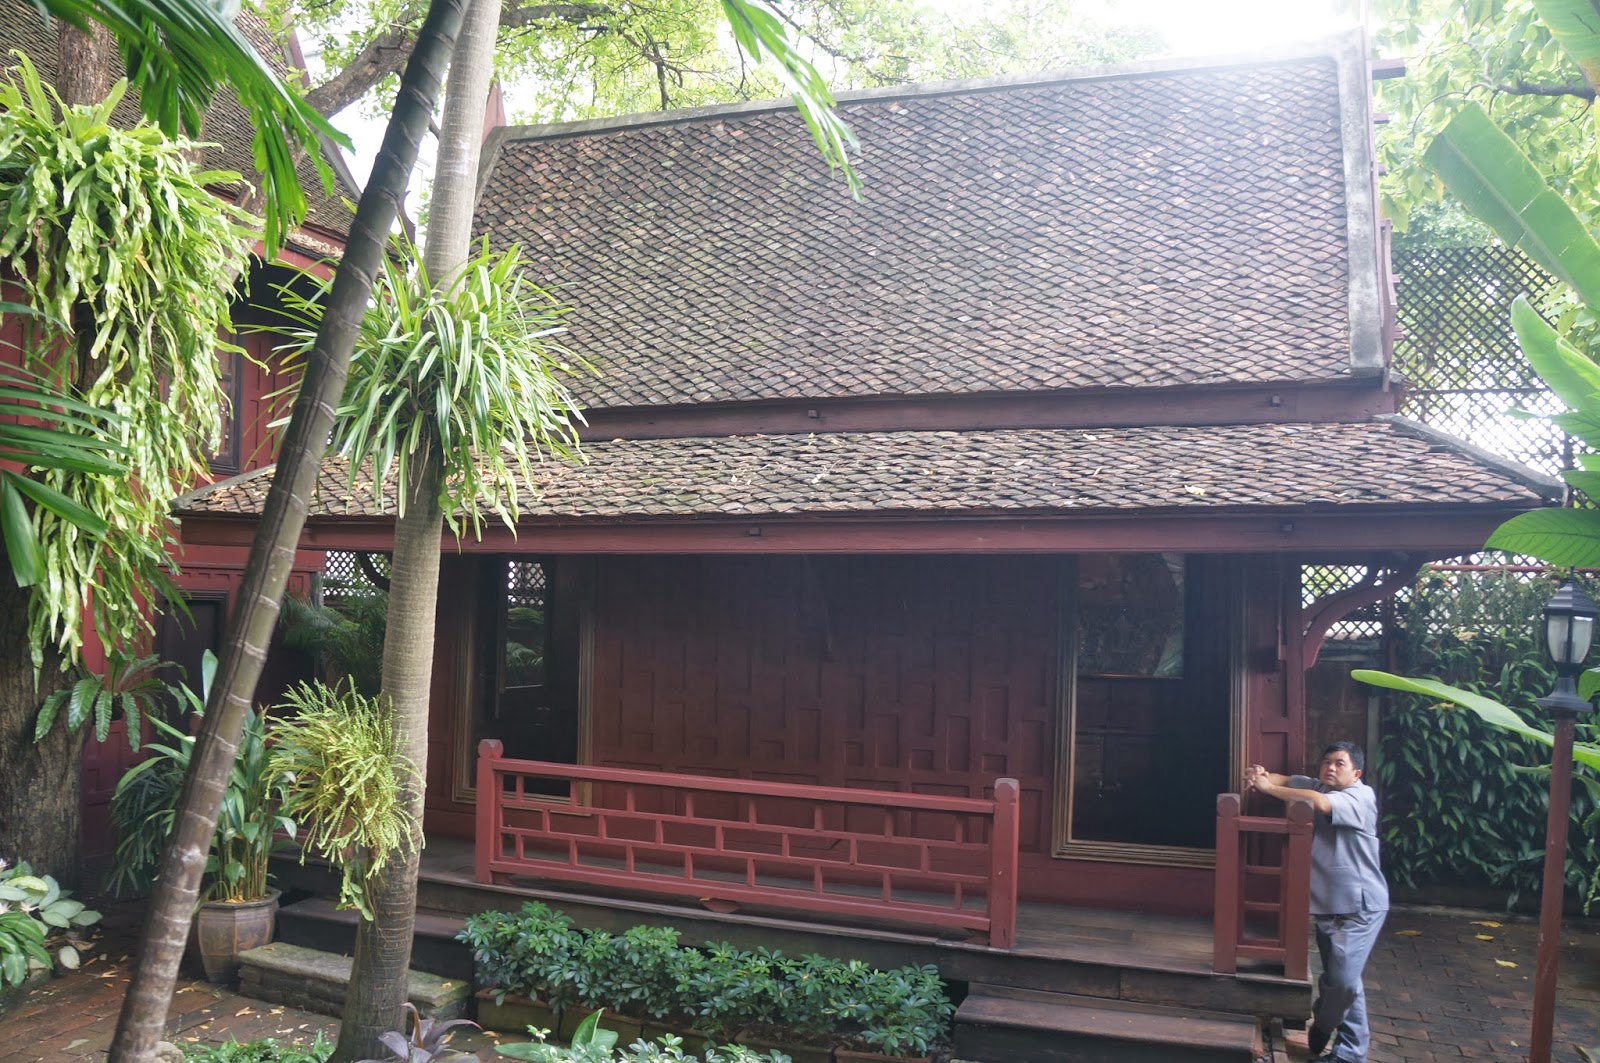 an analysis of the jim thomsons house Jim thompson house: silk trip - see 12,609 traveler reviews, 5,733 candid photos, and great deals for bangkok, thailand, at tripadvisor.